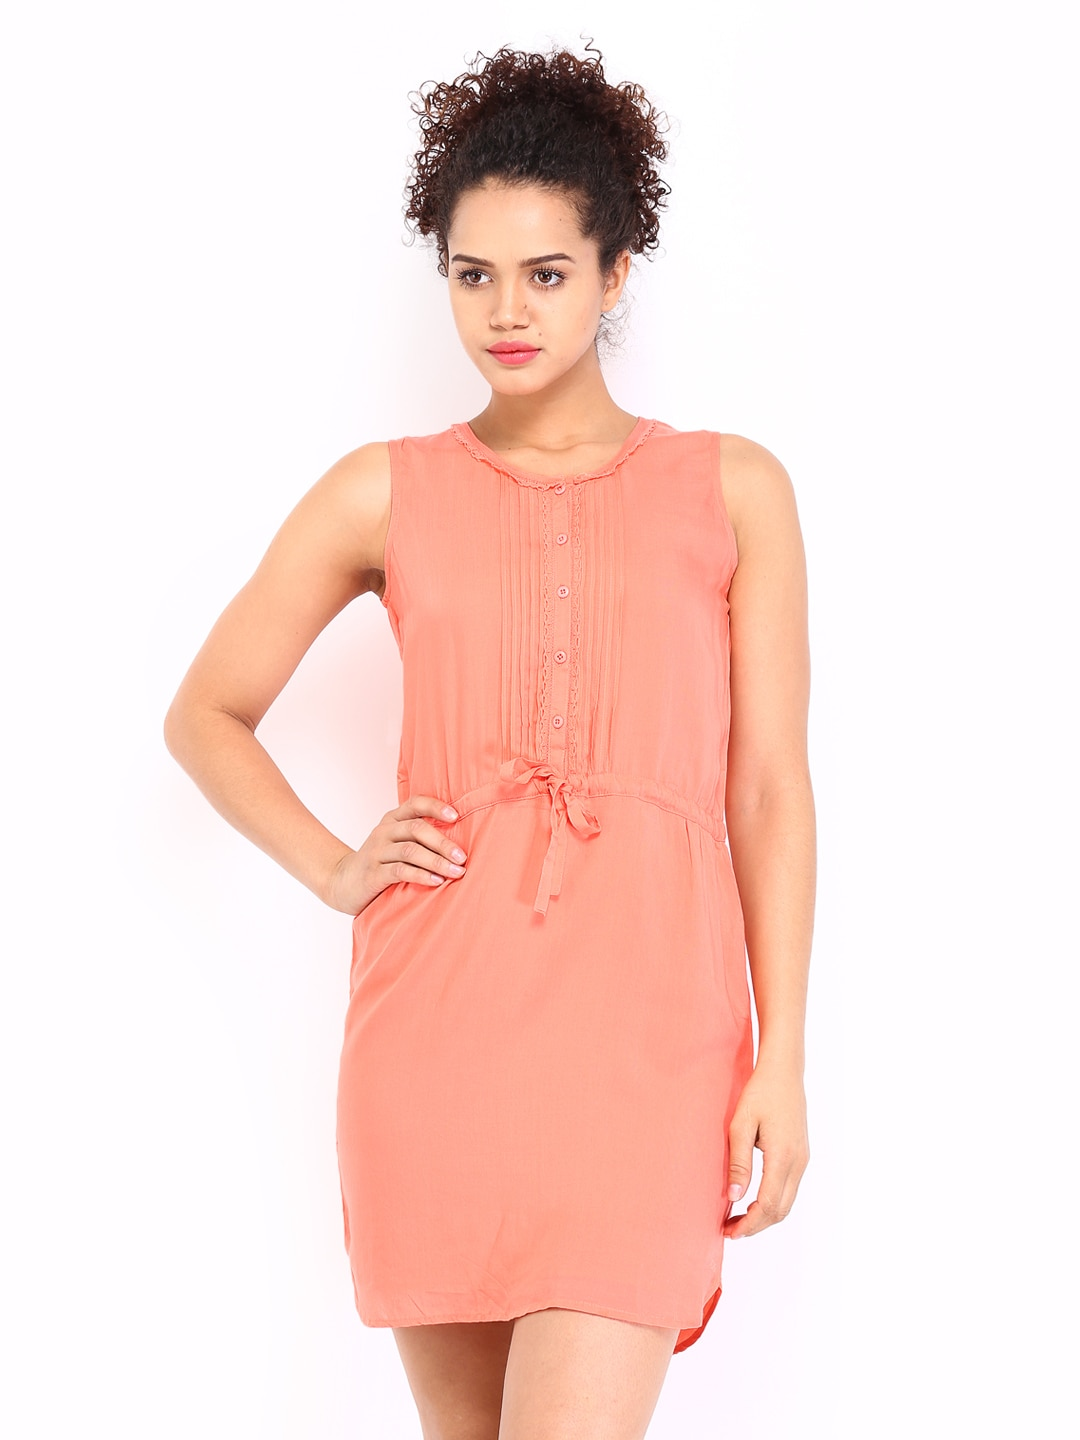 U.S. Polo Assn. Women Coral Pink Fit & Flare Dress